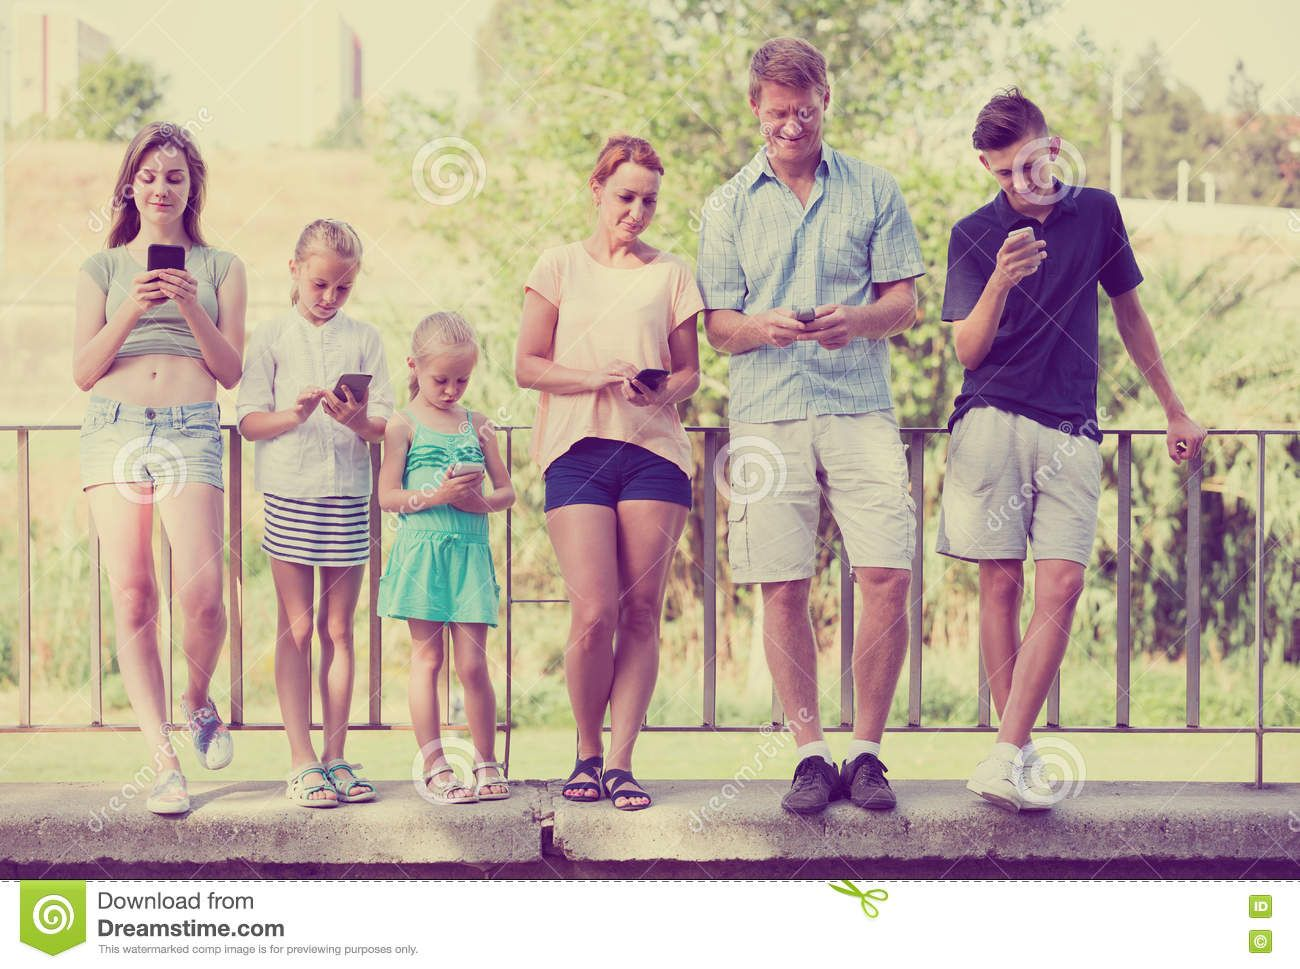 family-kids-playing-mobile-phones-four-town-summer-day-78340170.jpg